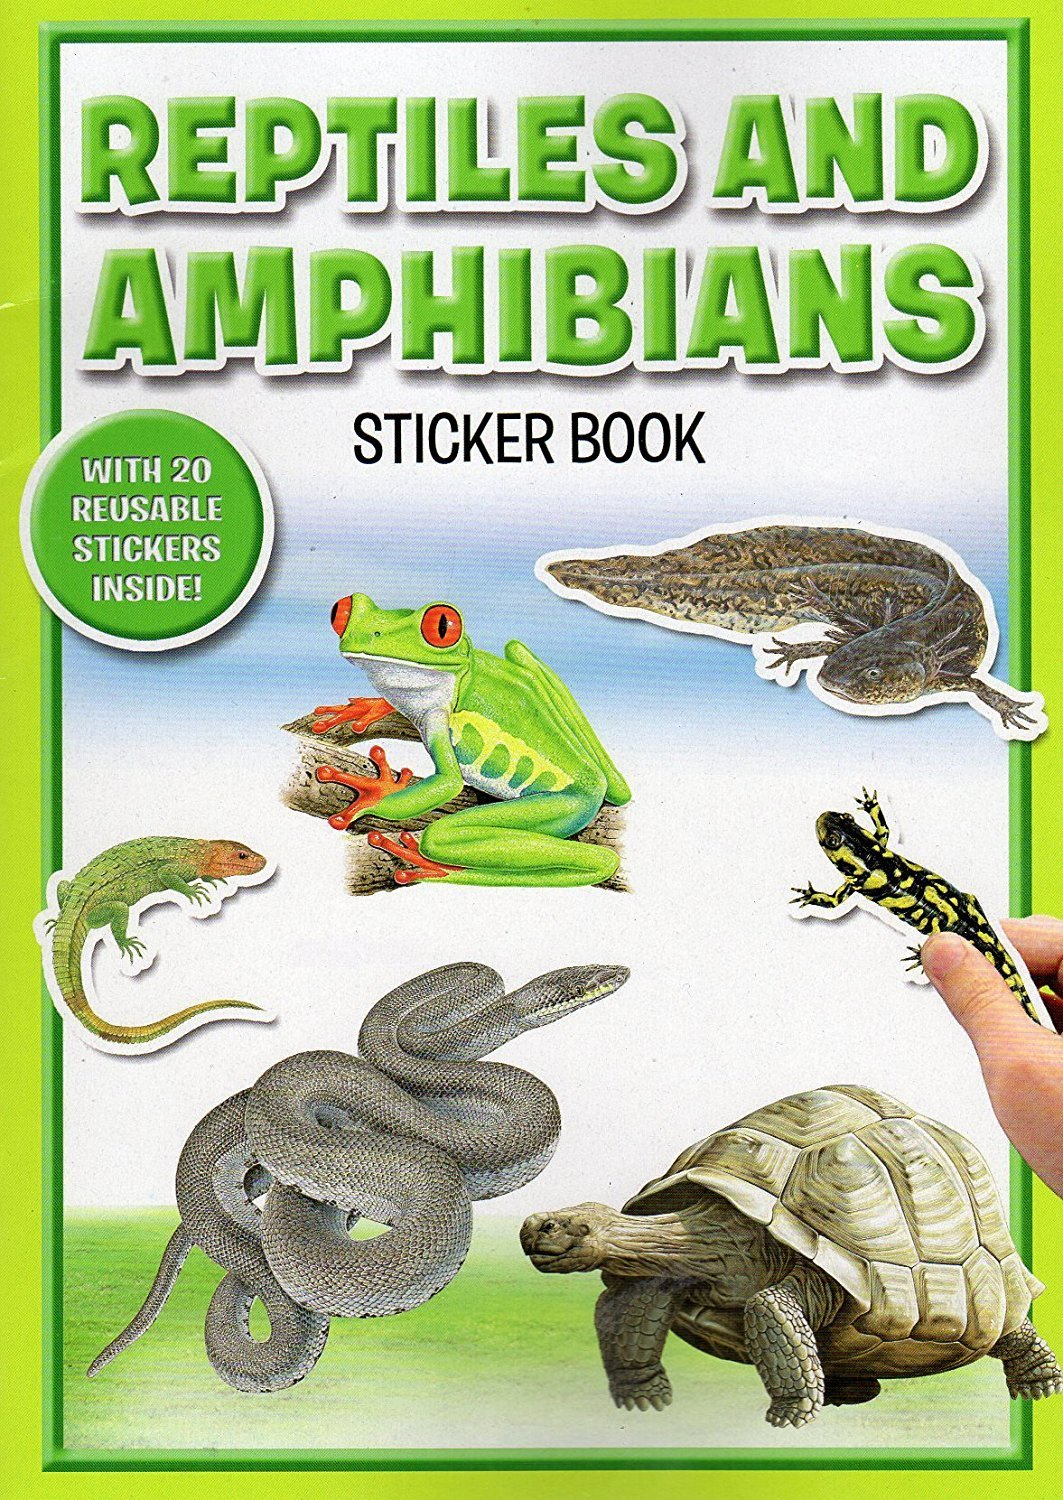 Reptiles and Amdhibians - Sticker Book with 20 Stickers